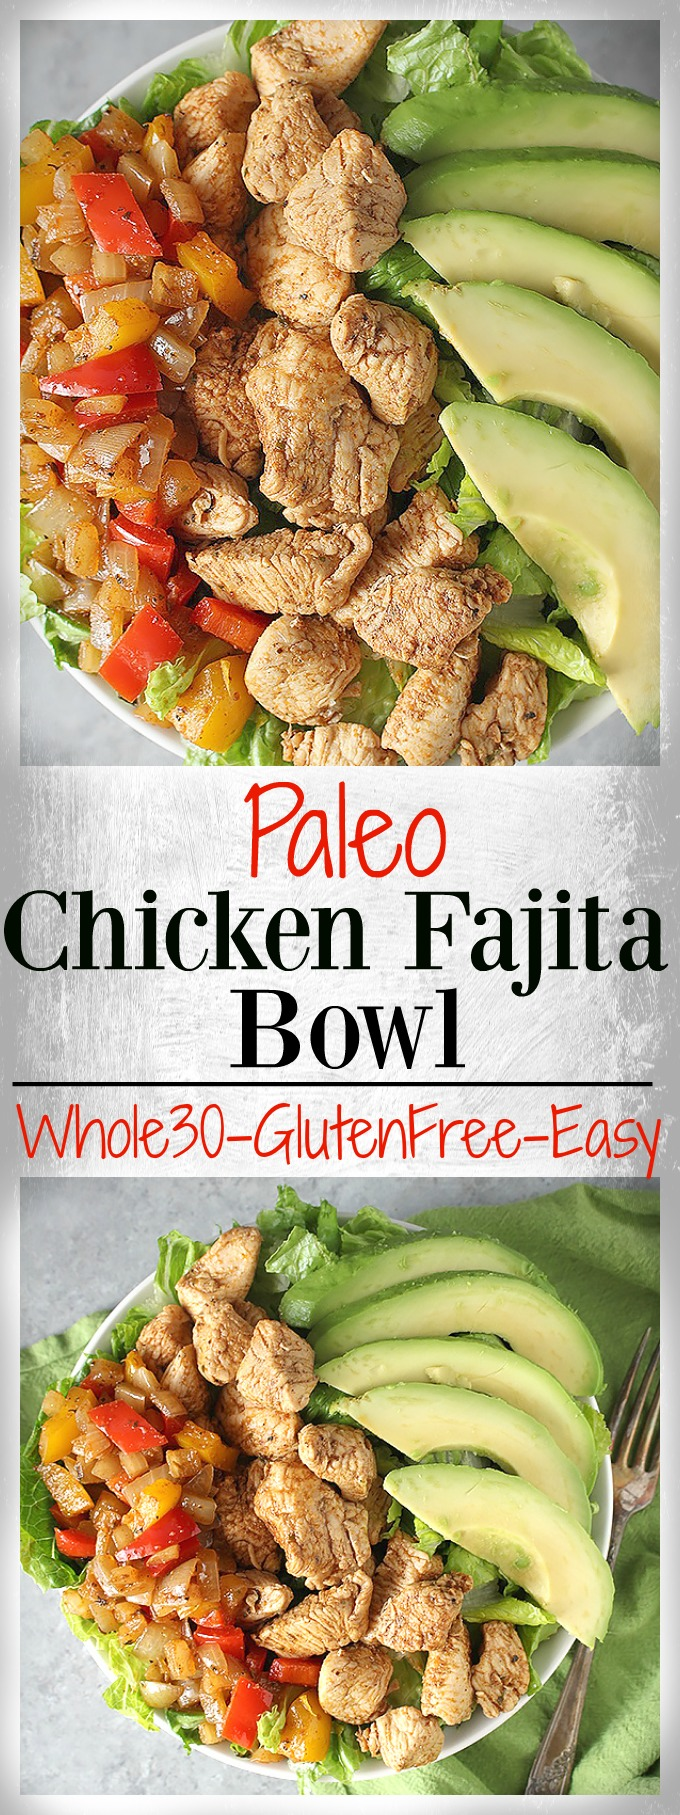 Paleo Chicken Fajita Bowl